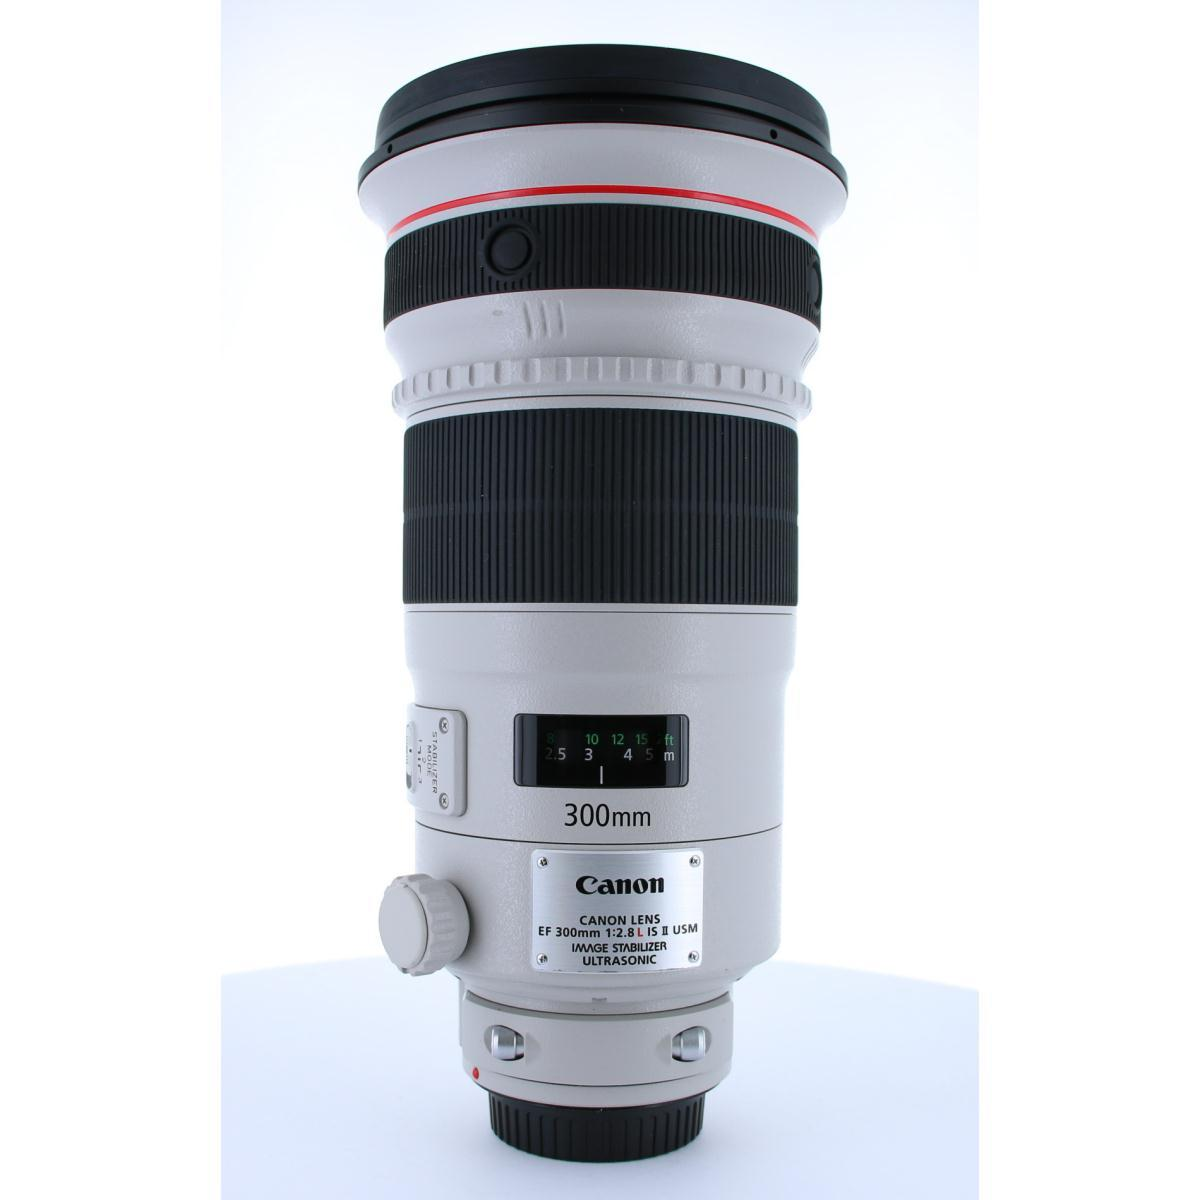 CANON EF300mm F2.8L ISII【中古】